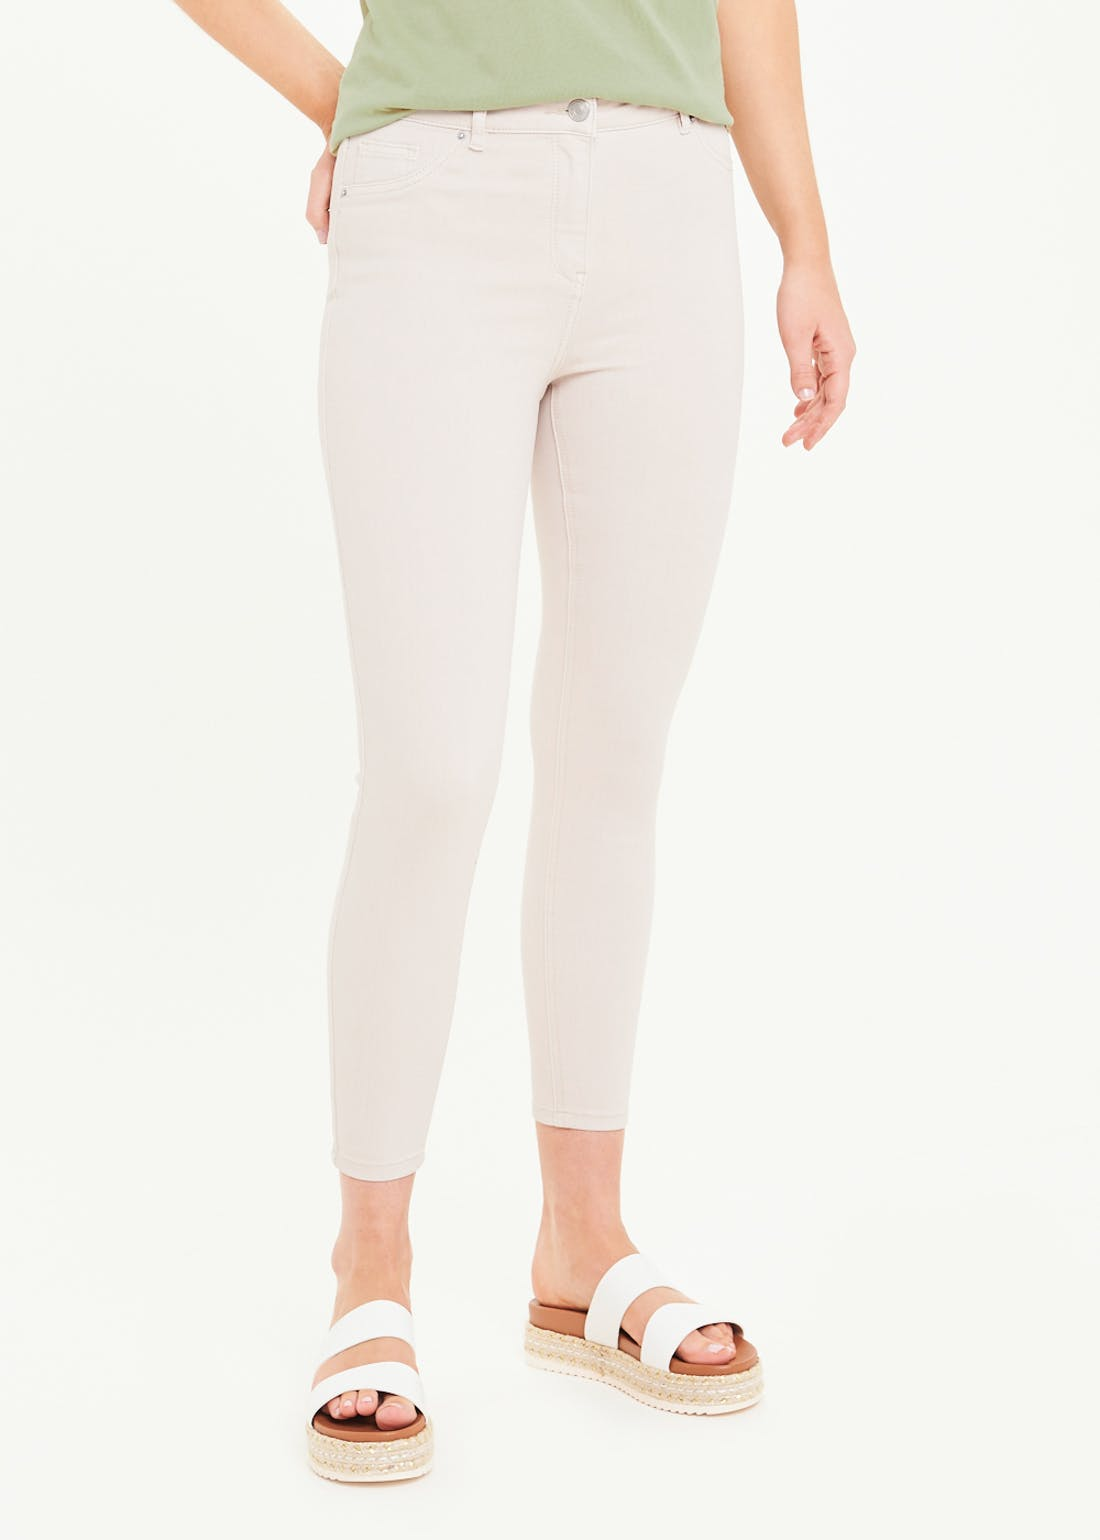 April Skinny Ankle Grazer Jeans